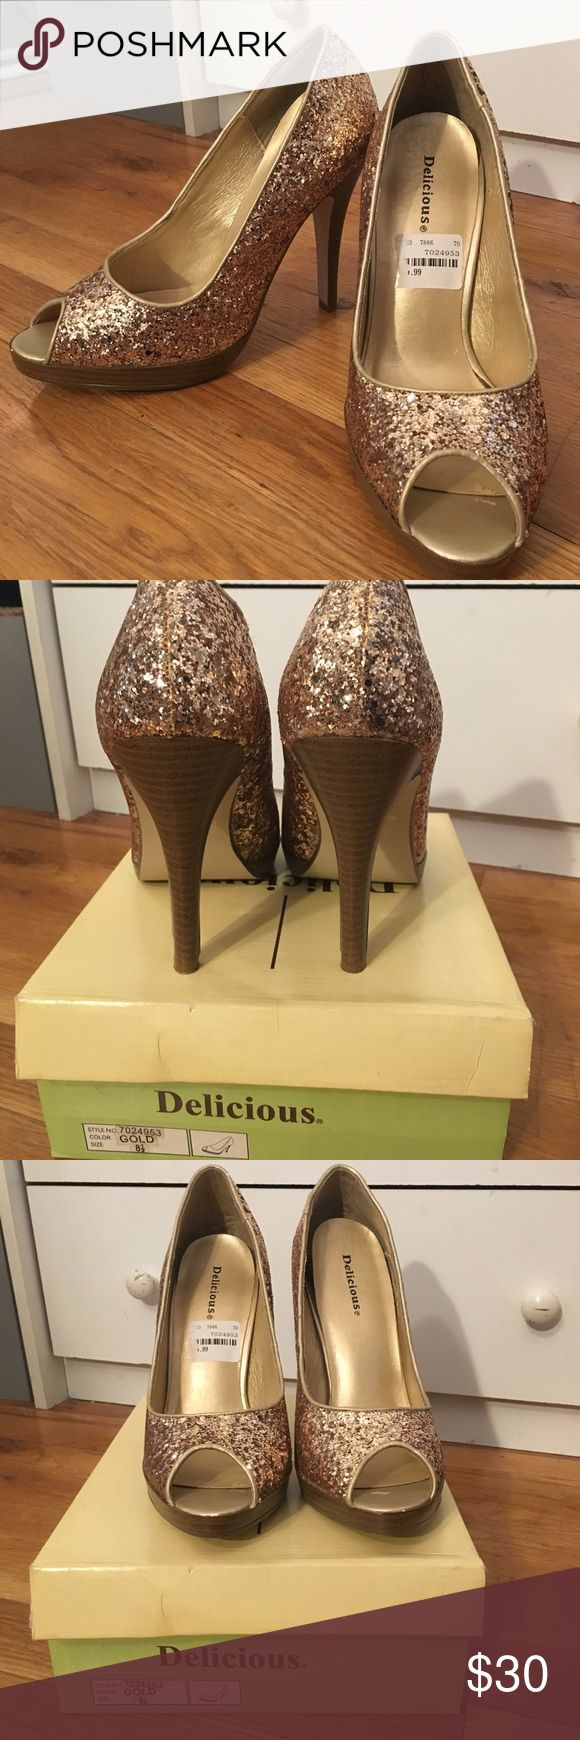 NWT Gold Open Toe Heels NWT brand new, never worn still in box open toed heels! Only imperfection is that the inside of the shoe (the sole) is peeling up as pictured. Offers accepted delicious Shoes Heels